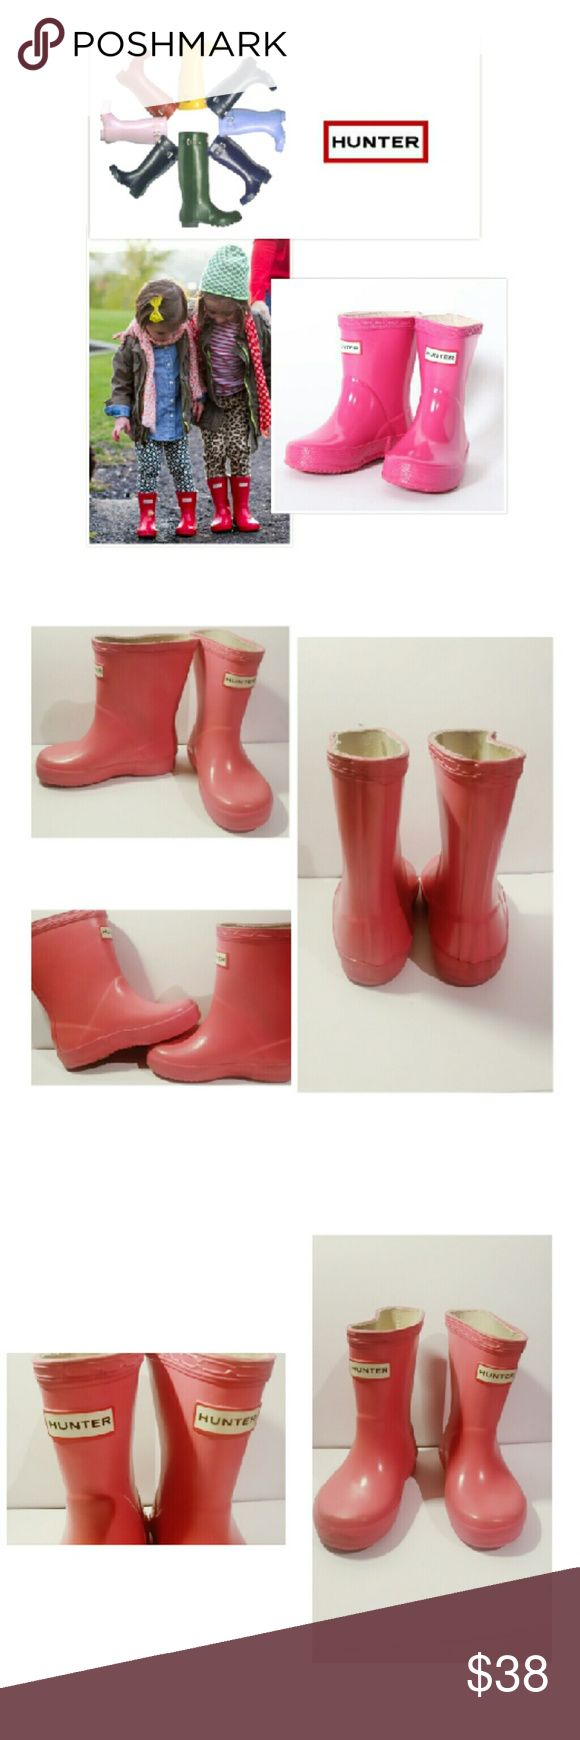 GIRLS HUNTER BOOTS PINK SZ TODDLER  5 Pre-Loved Pink Toddlers Hunter Boots Normal wear but still adorable and perfect for rainy days.  Priced to sell Hunter Boots Shoes Rain & Snow Boots